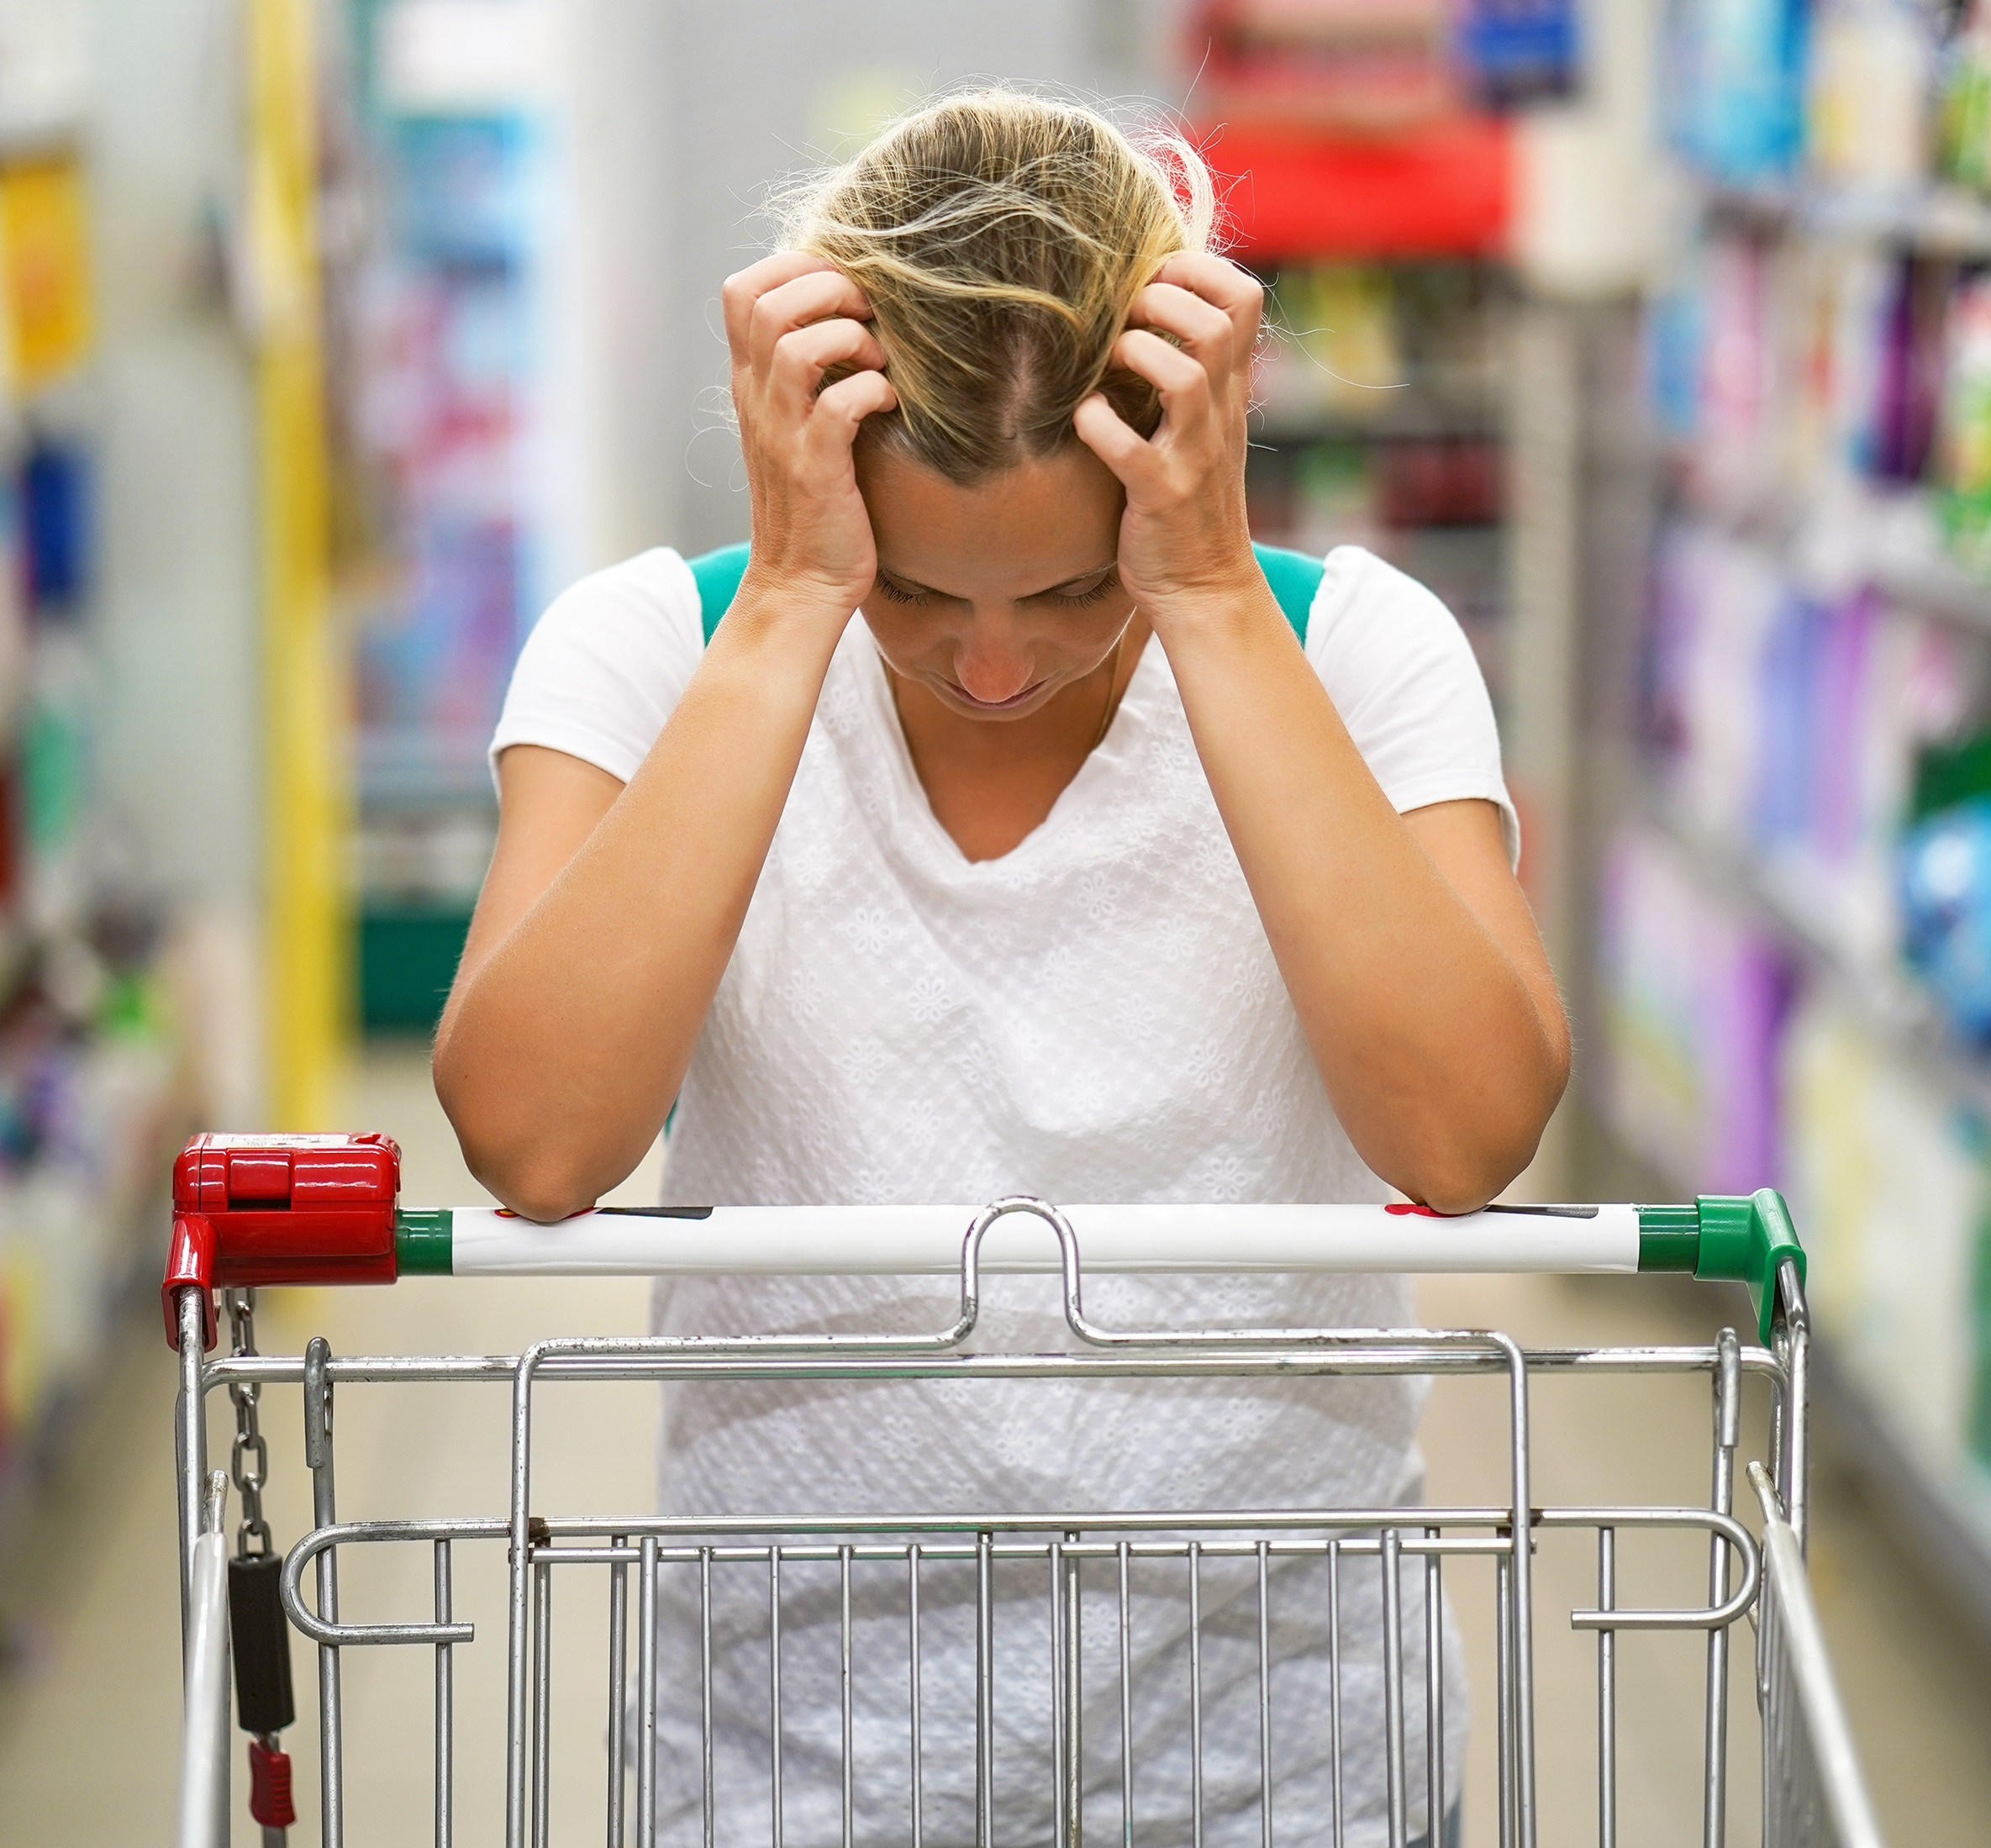 A young woman in a supermarket and leaning on an supermarket trolley and holding her head in her hands as if she is upset